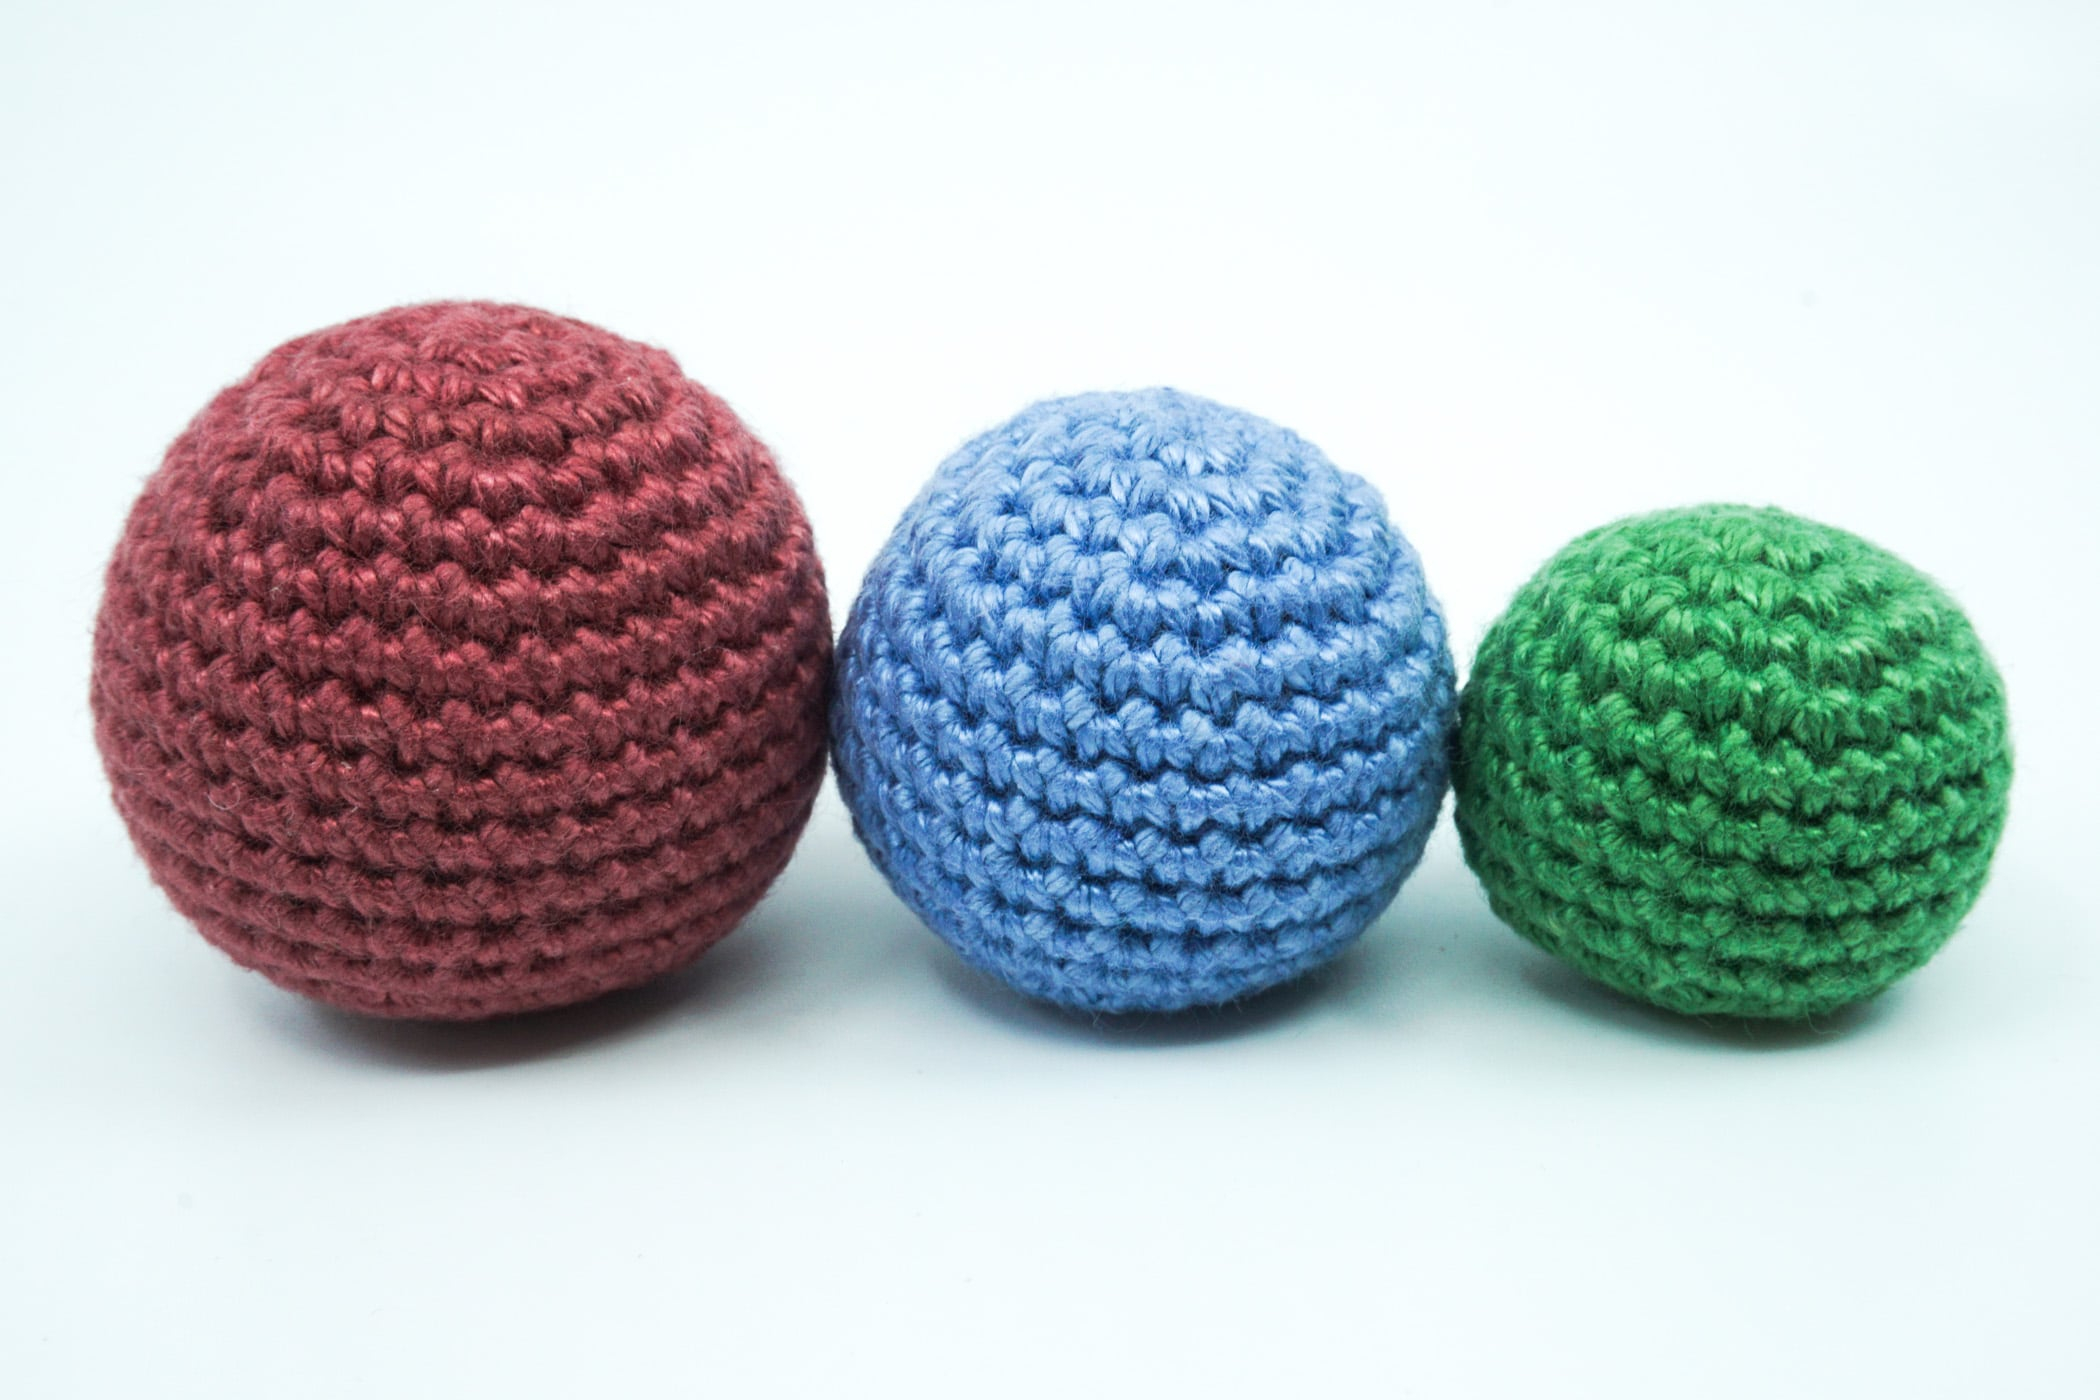 Crochet Ball Pattern How To Crochet Balls And Spheres Supergurumi